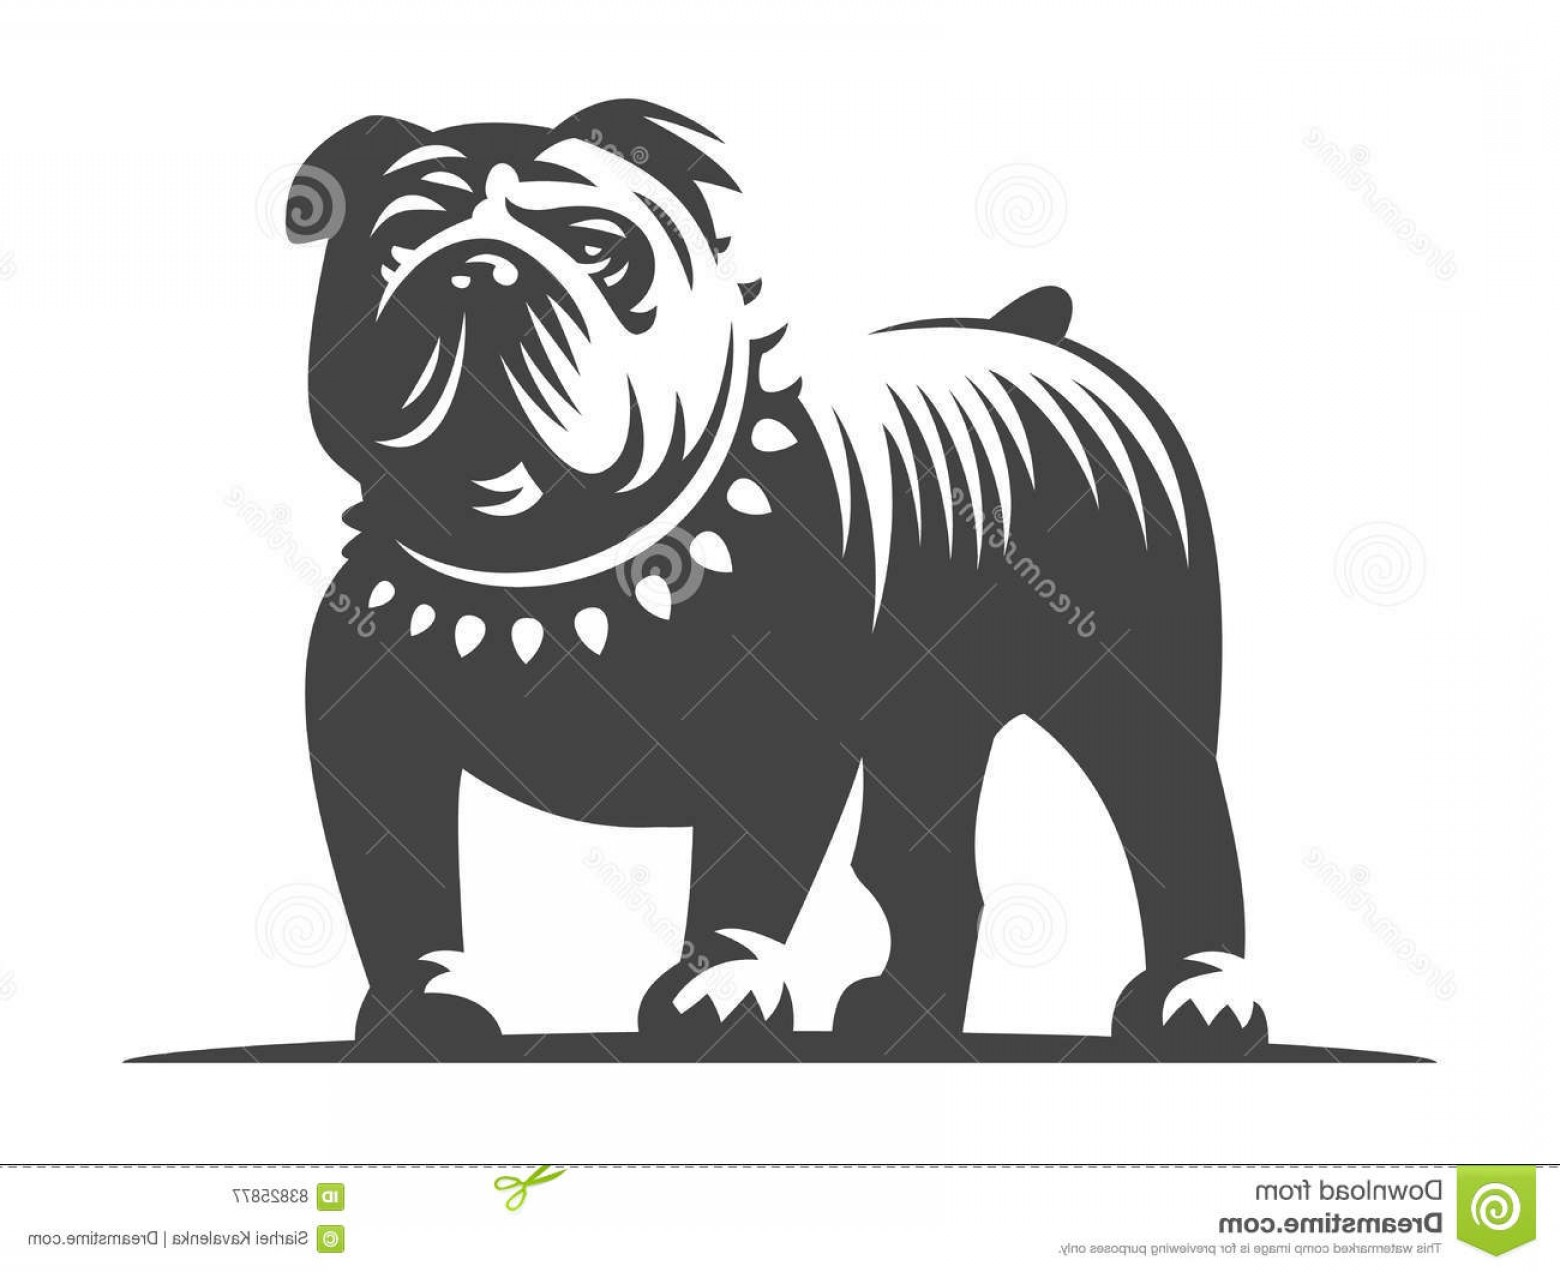 Bulldog Vector Art: Stock Illustration Bulldog Vector Illustration White Background Design Image